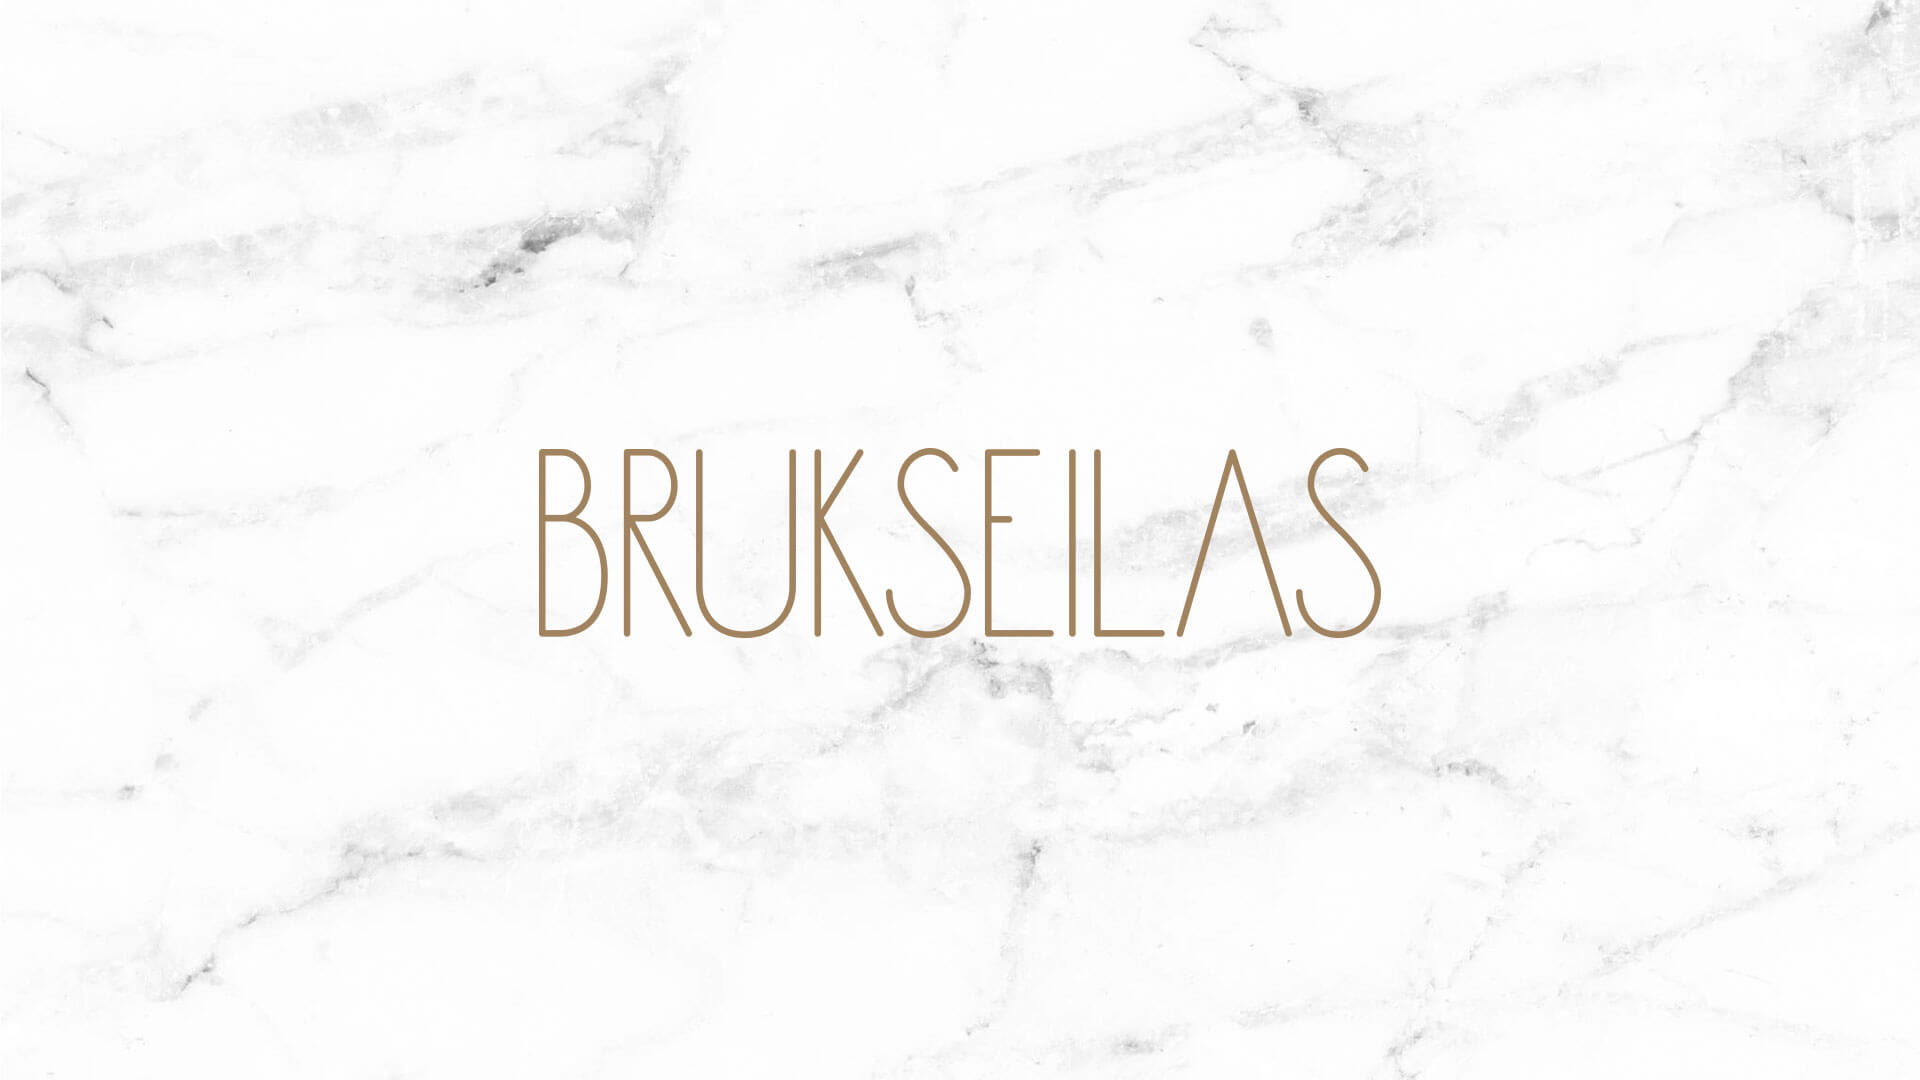 Logo of Brukseilas on Marble